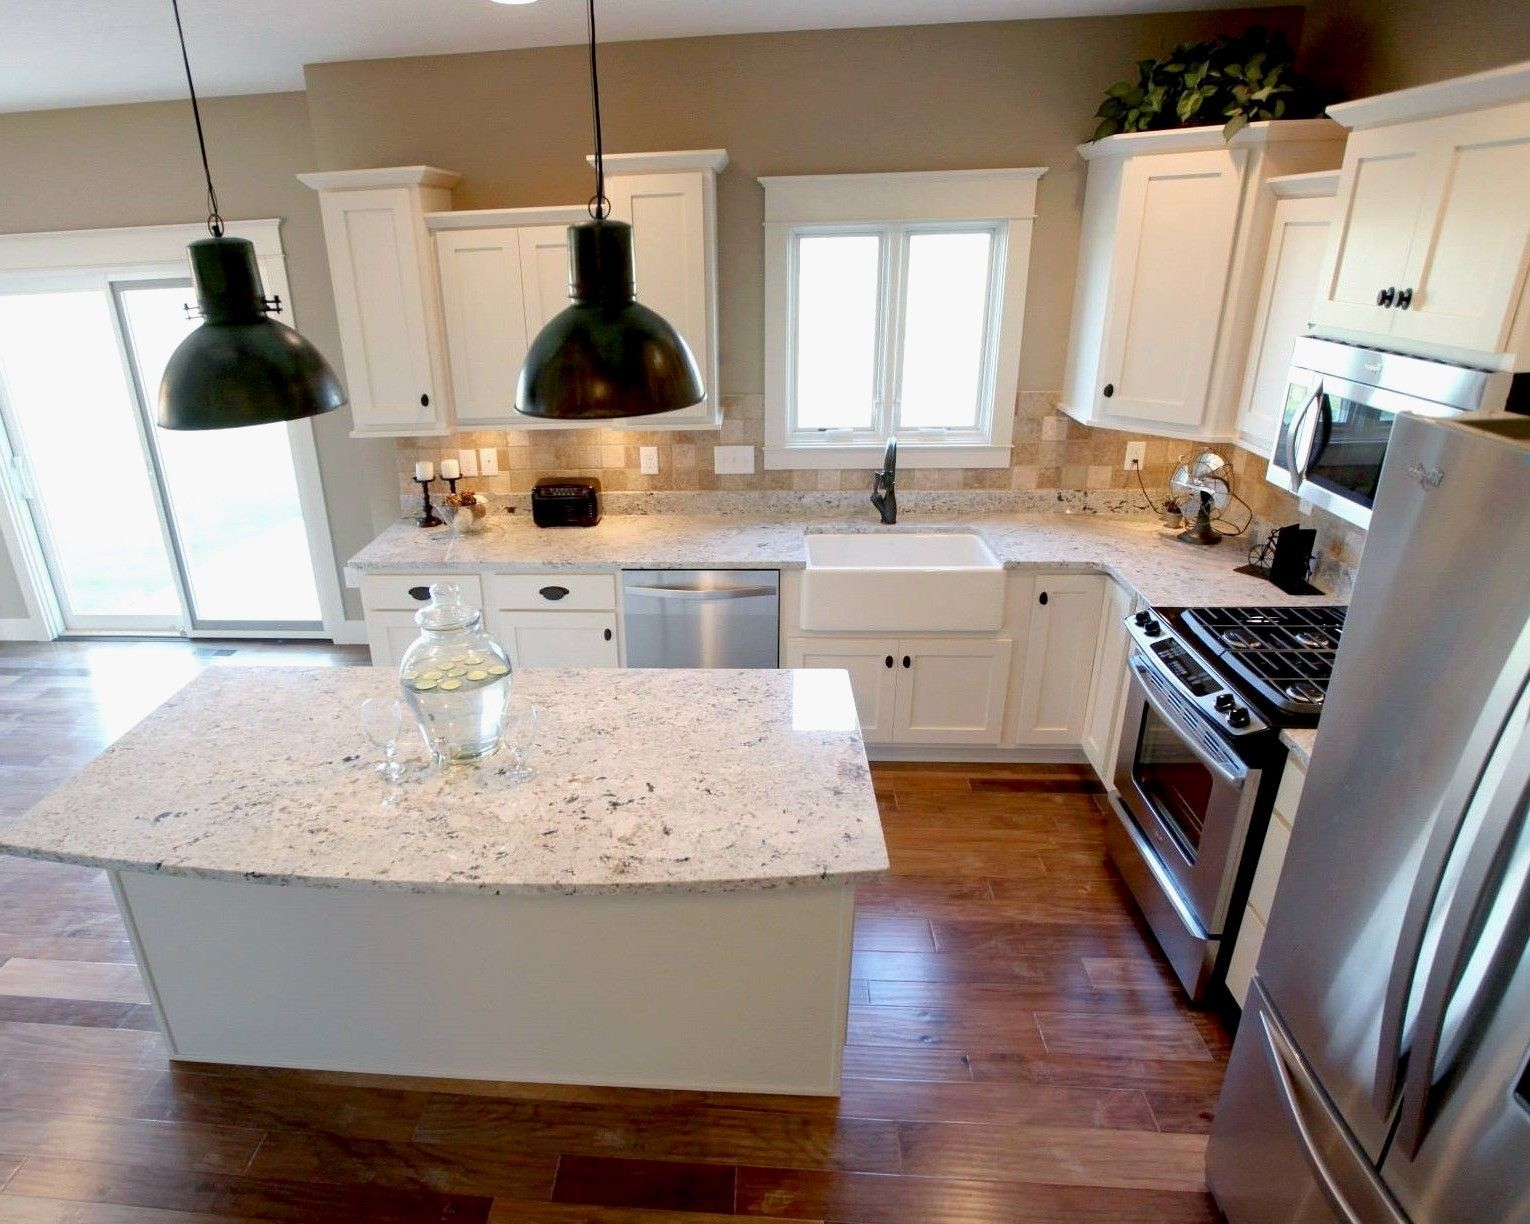 25 Fascinating Kitchen Layout Ideas 2020 A Guide For Kitchen